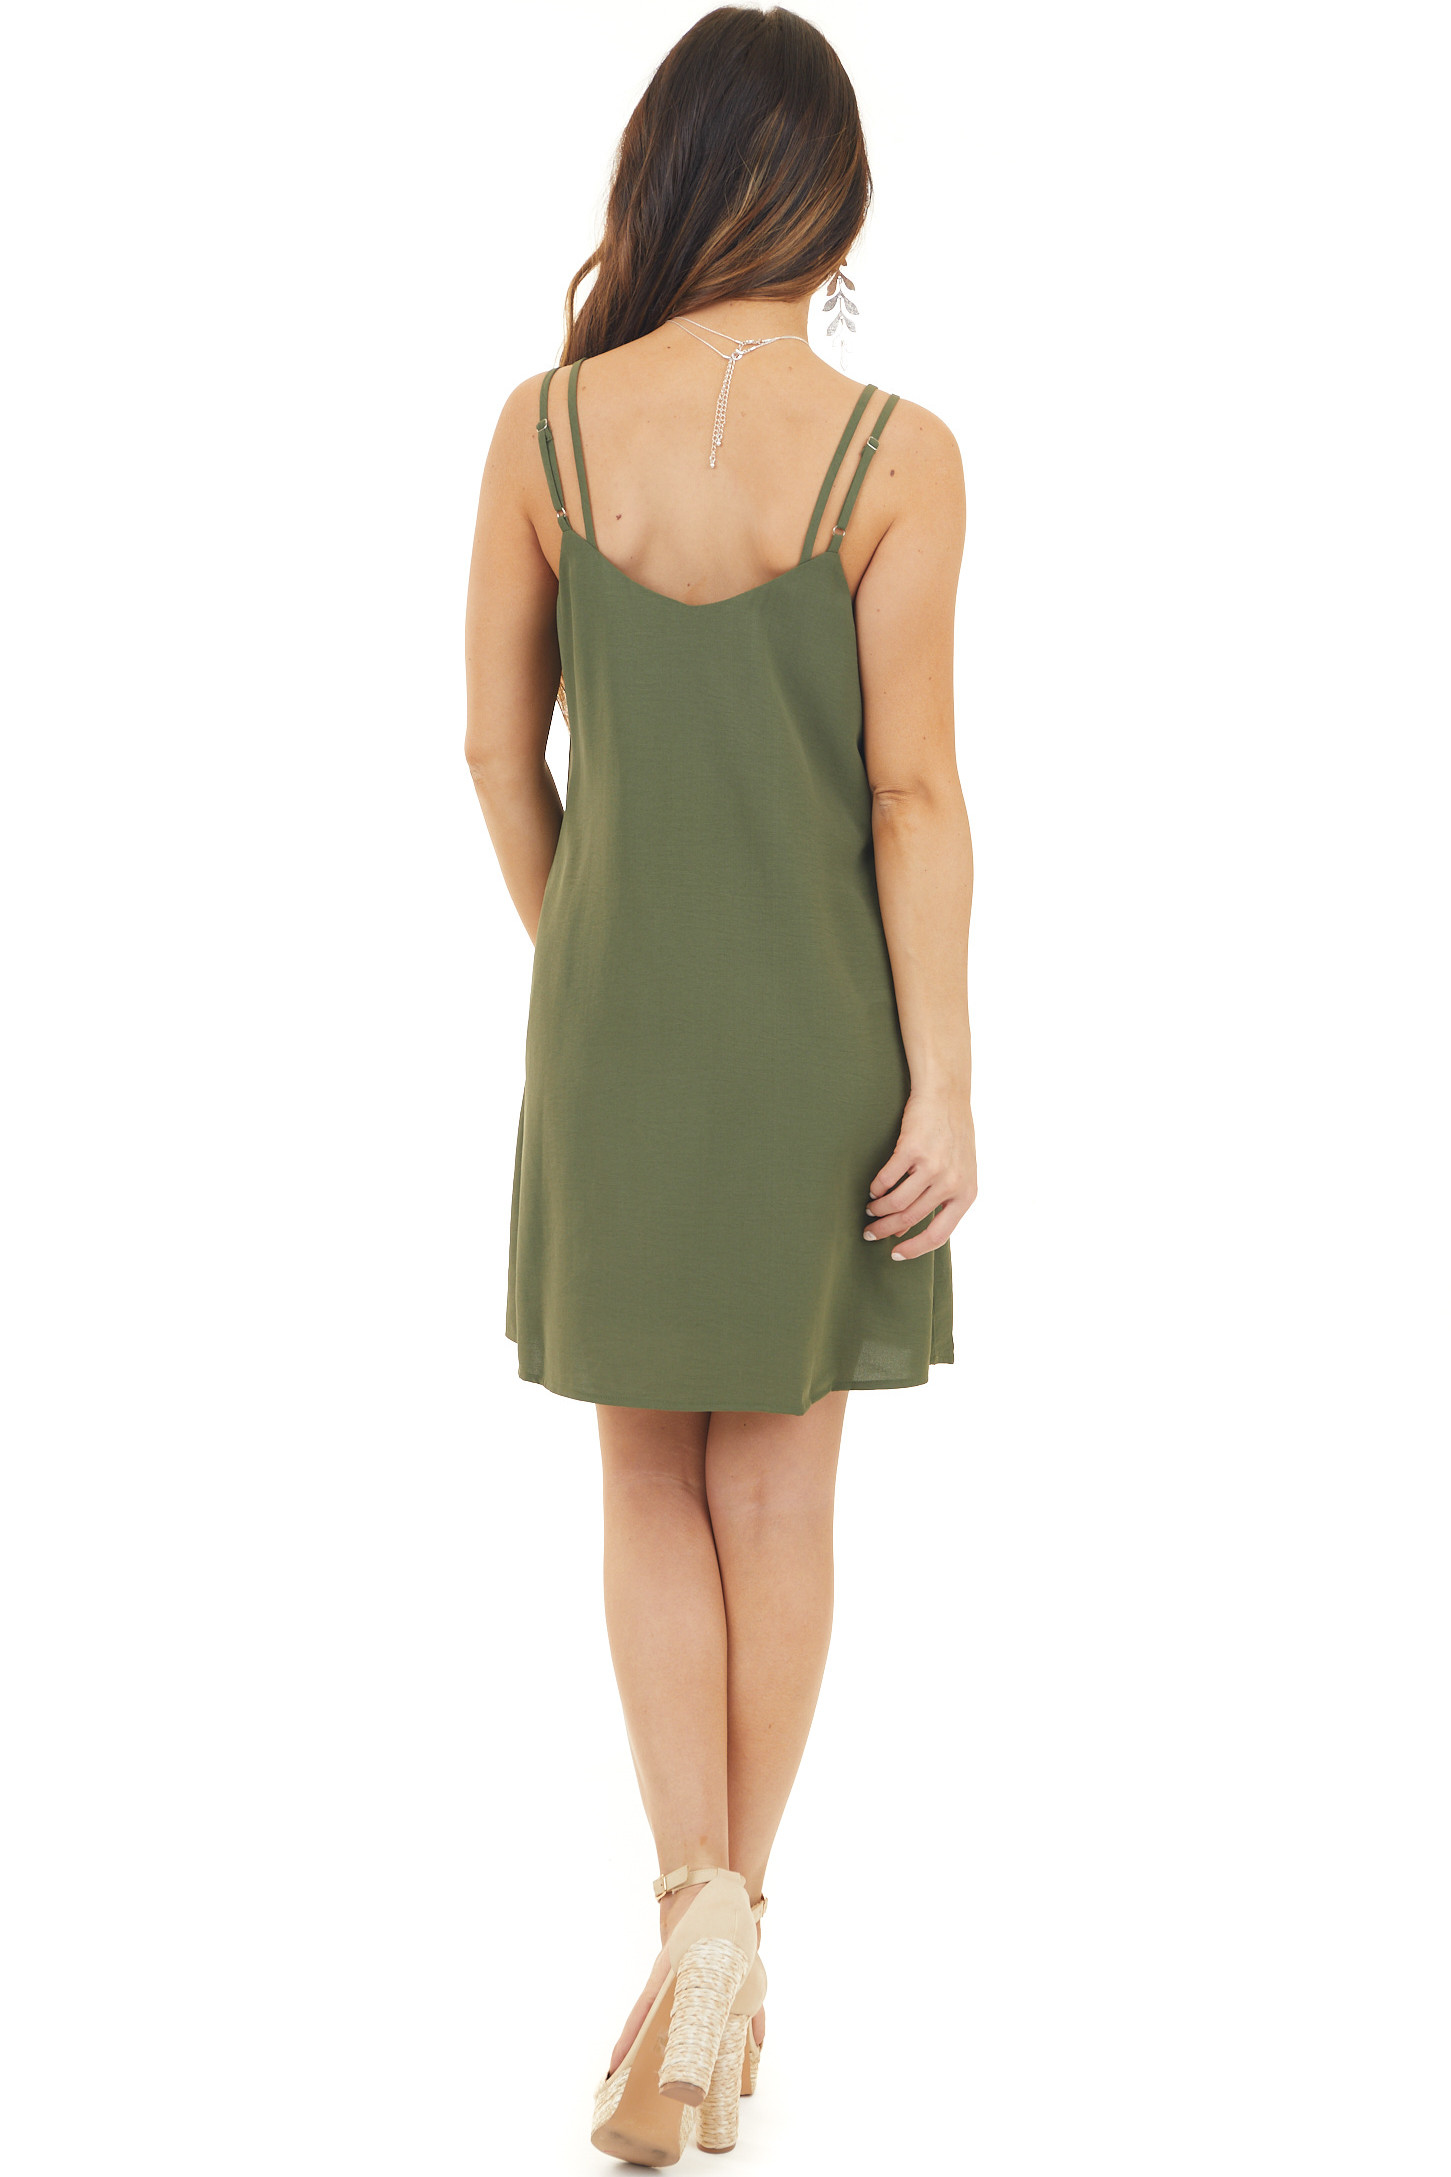 Olive Green Spaghetti Strap Shift Dress with Neck Tie Detail